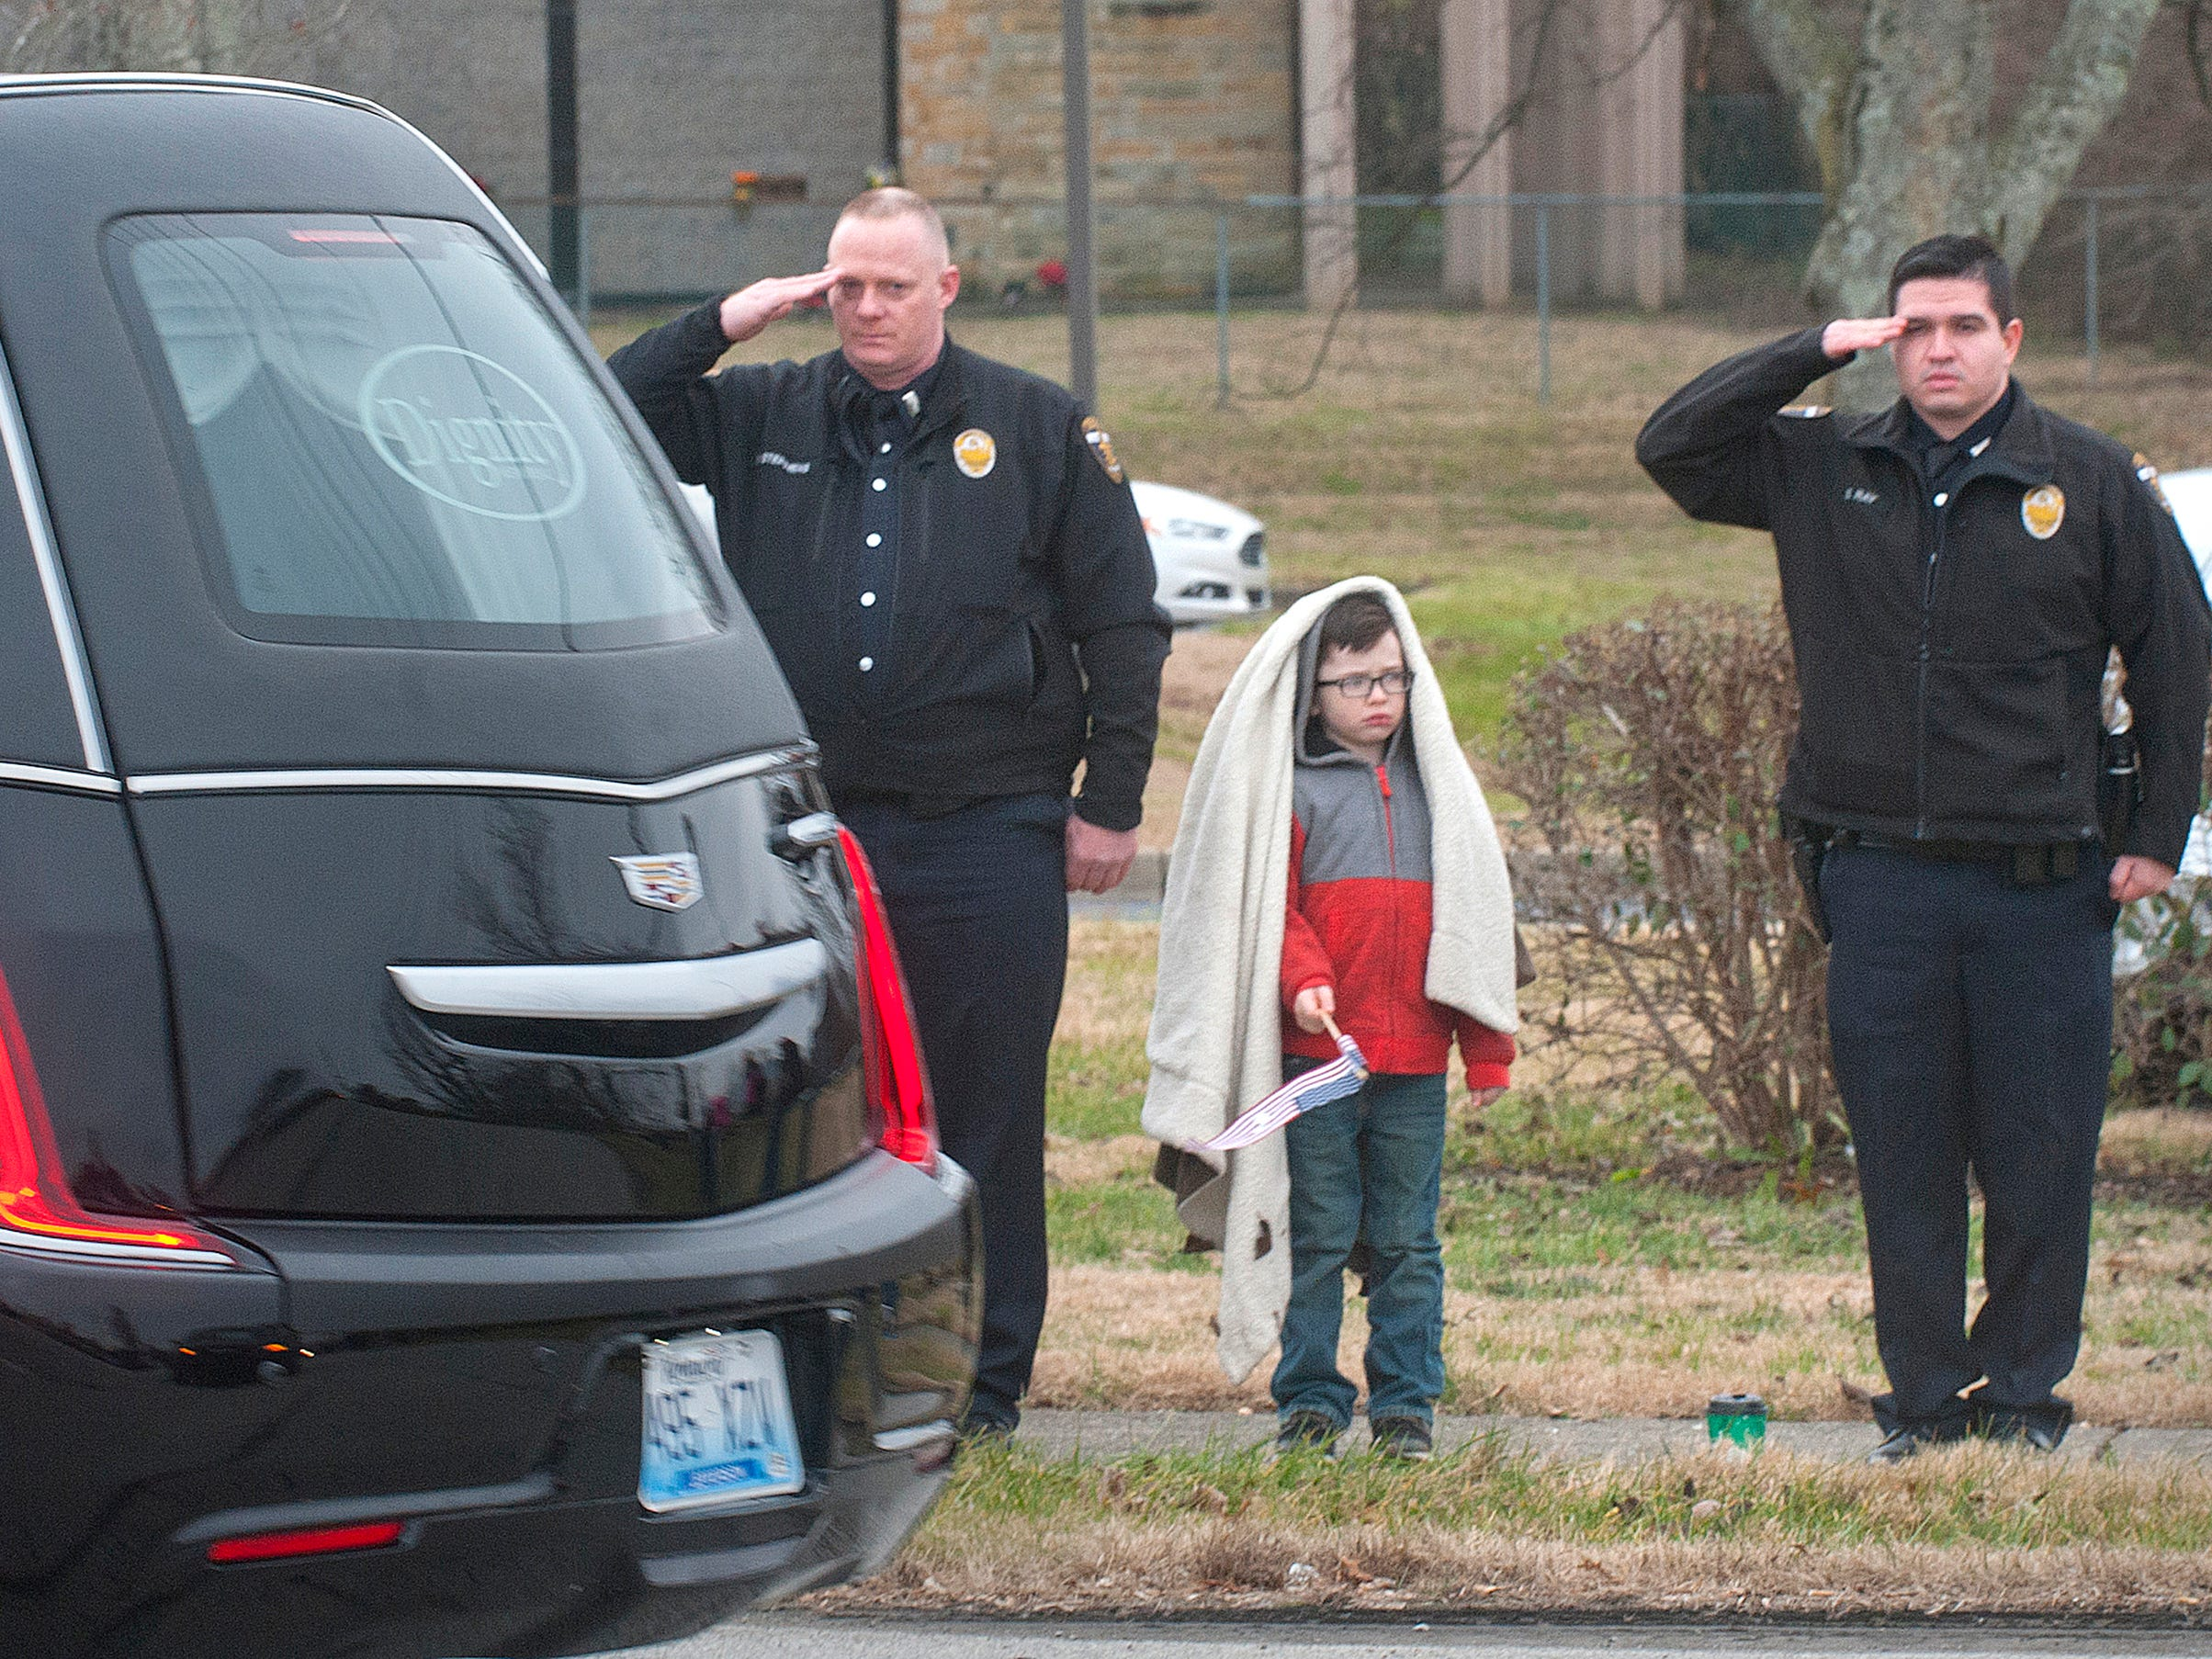 Metro Corrections Officers R. Stephn, left, and S. Ray, right, salute as the casket of LMPD Detective Deidre Mengedoht passes. Ray's son, Andrew, age 6, center, watches the processional. 29 December 2018